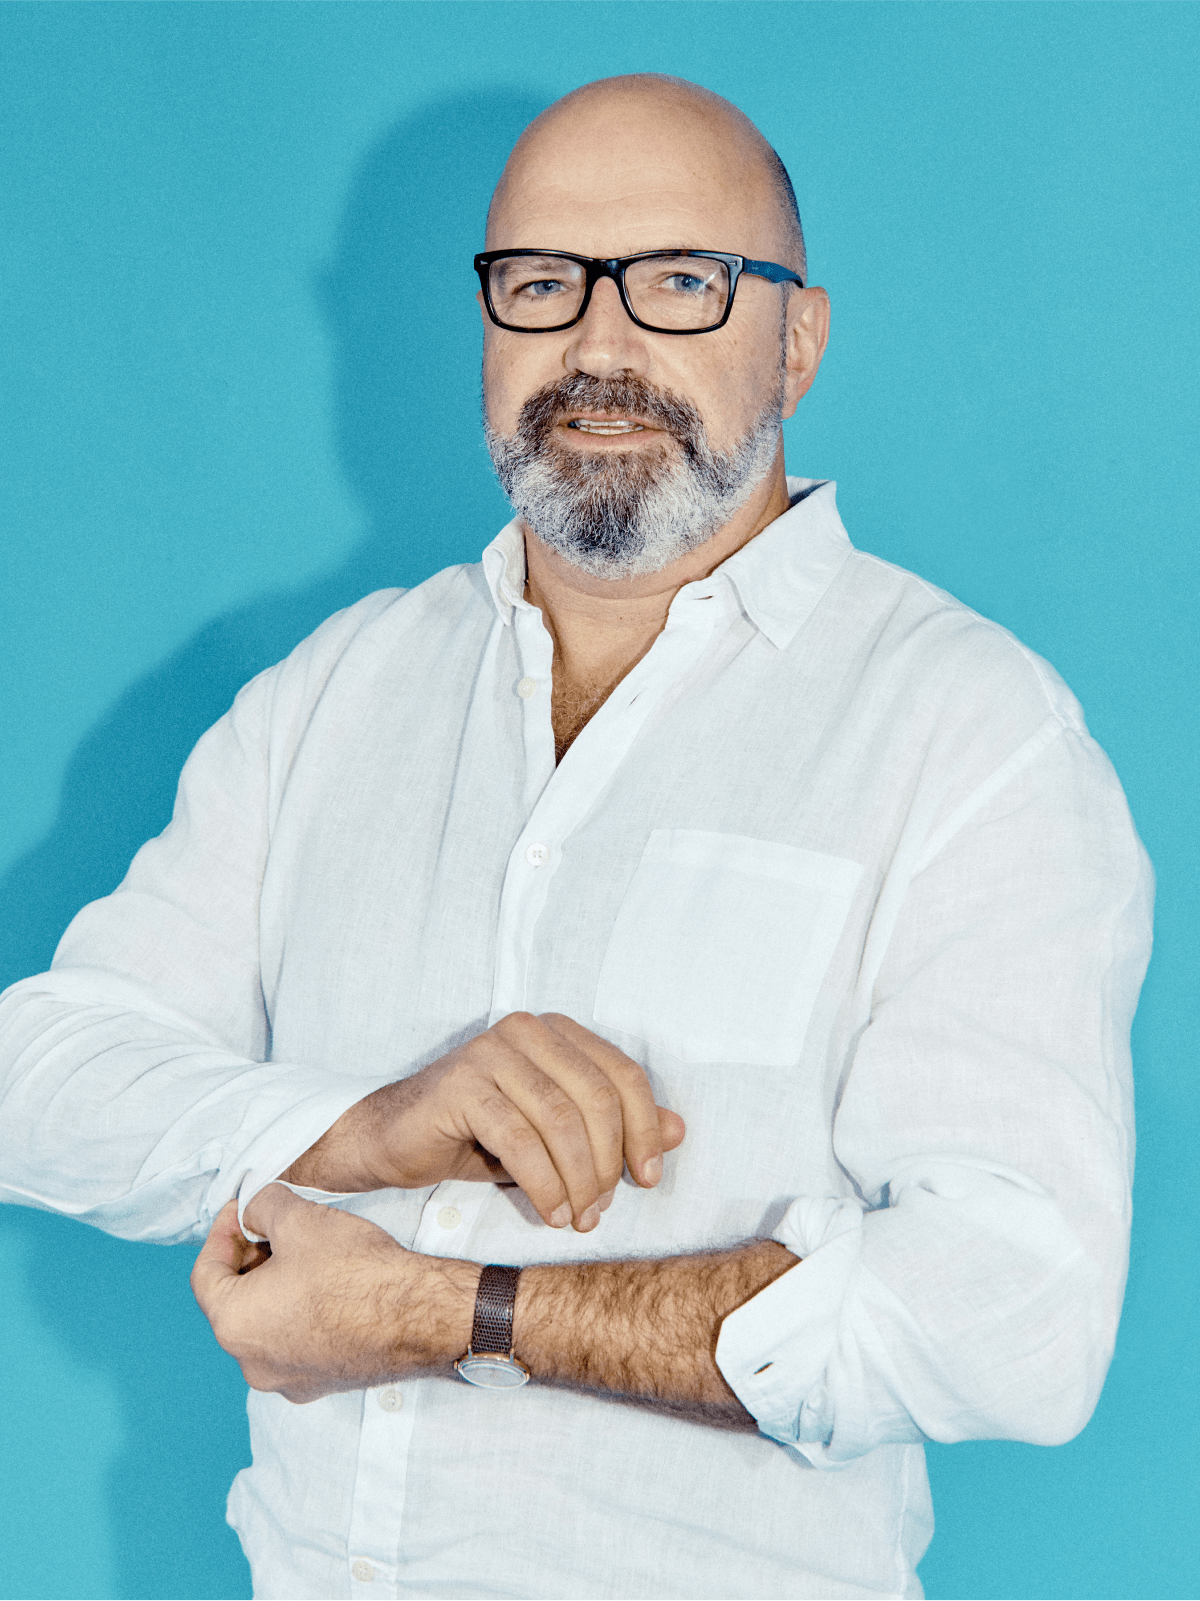 Man with beard and glasses doing up button on the cuff of shirt